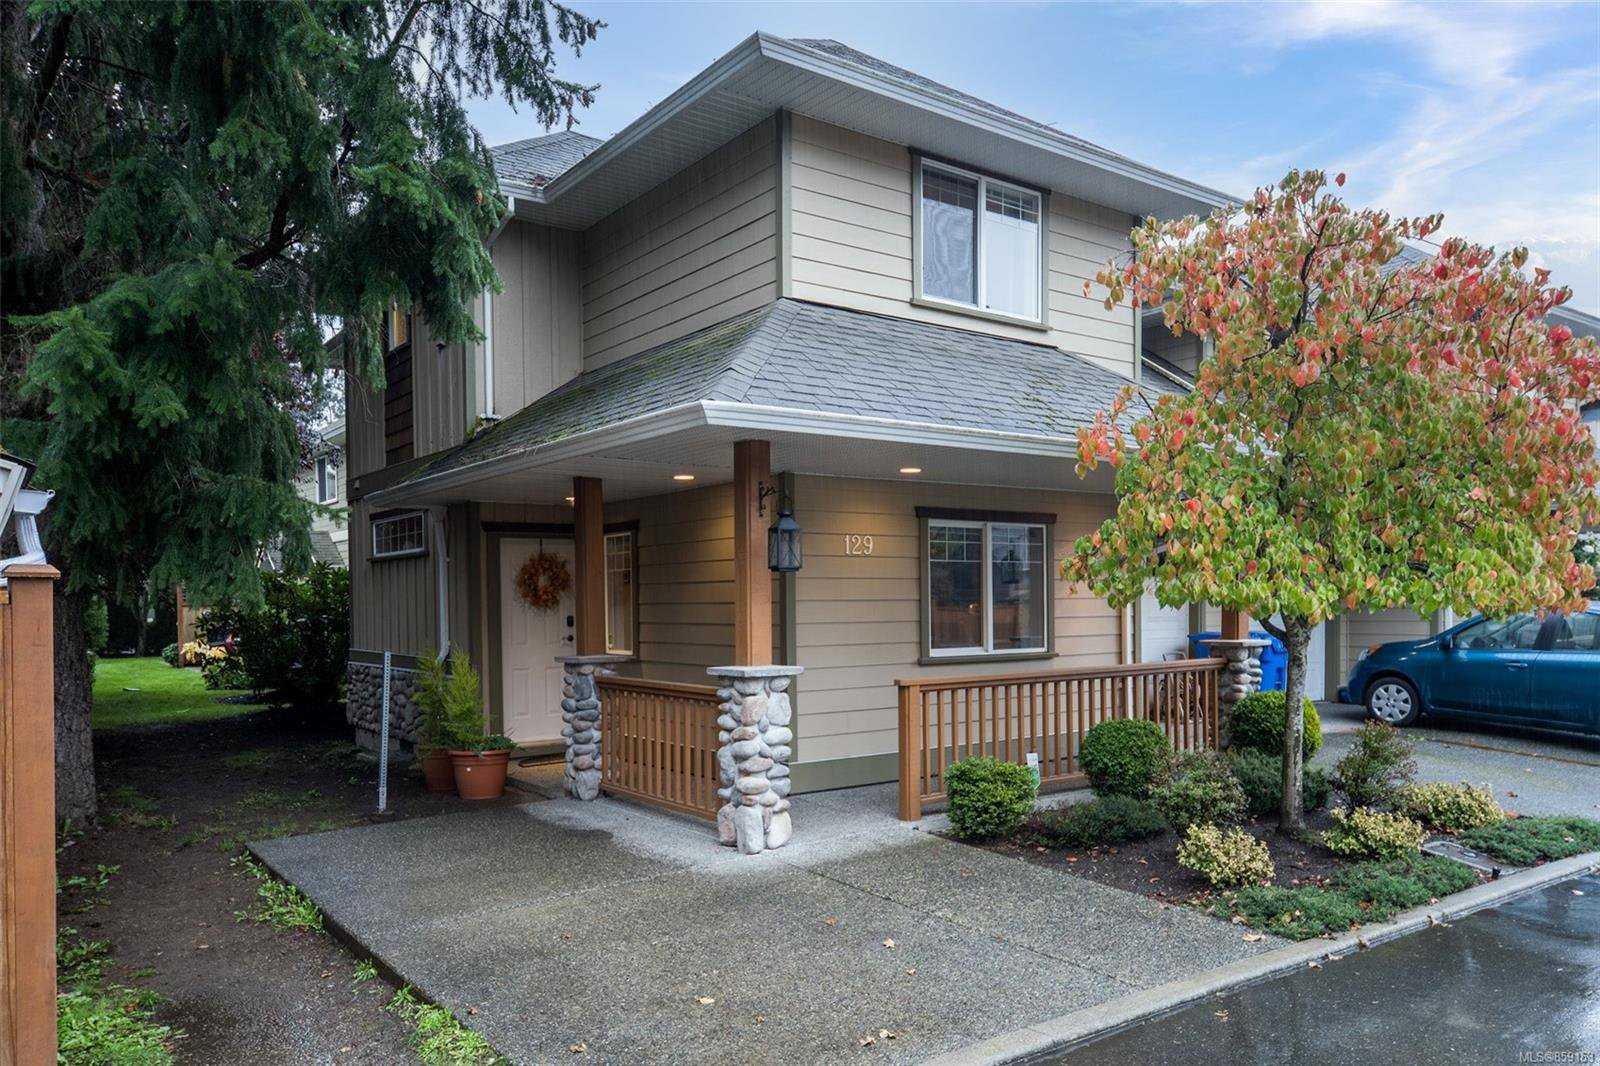 Main Photo: 129 951 Goldstream Ave in : La Langford Proper Row/Townhouse for sale (Langford)  : MLS®# 859153